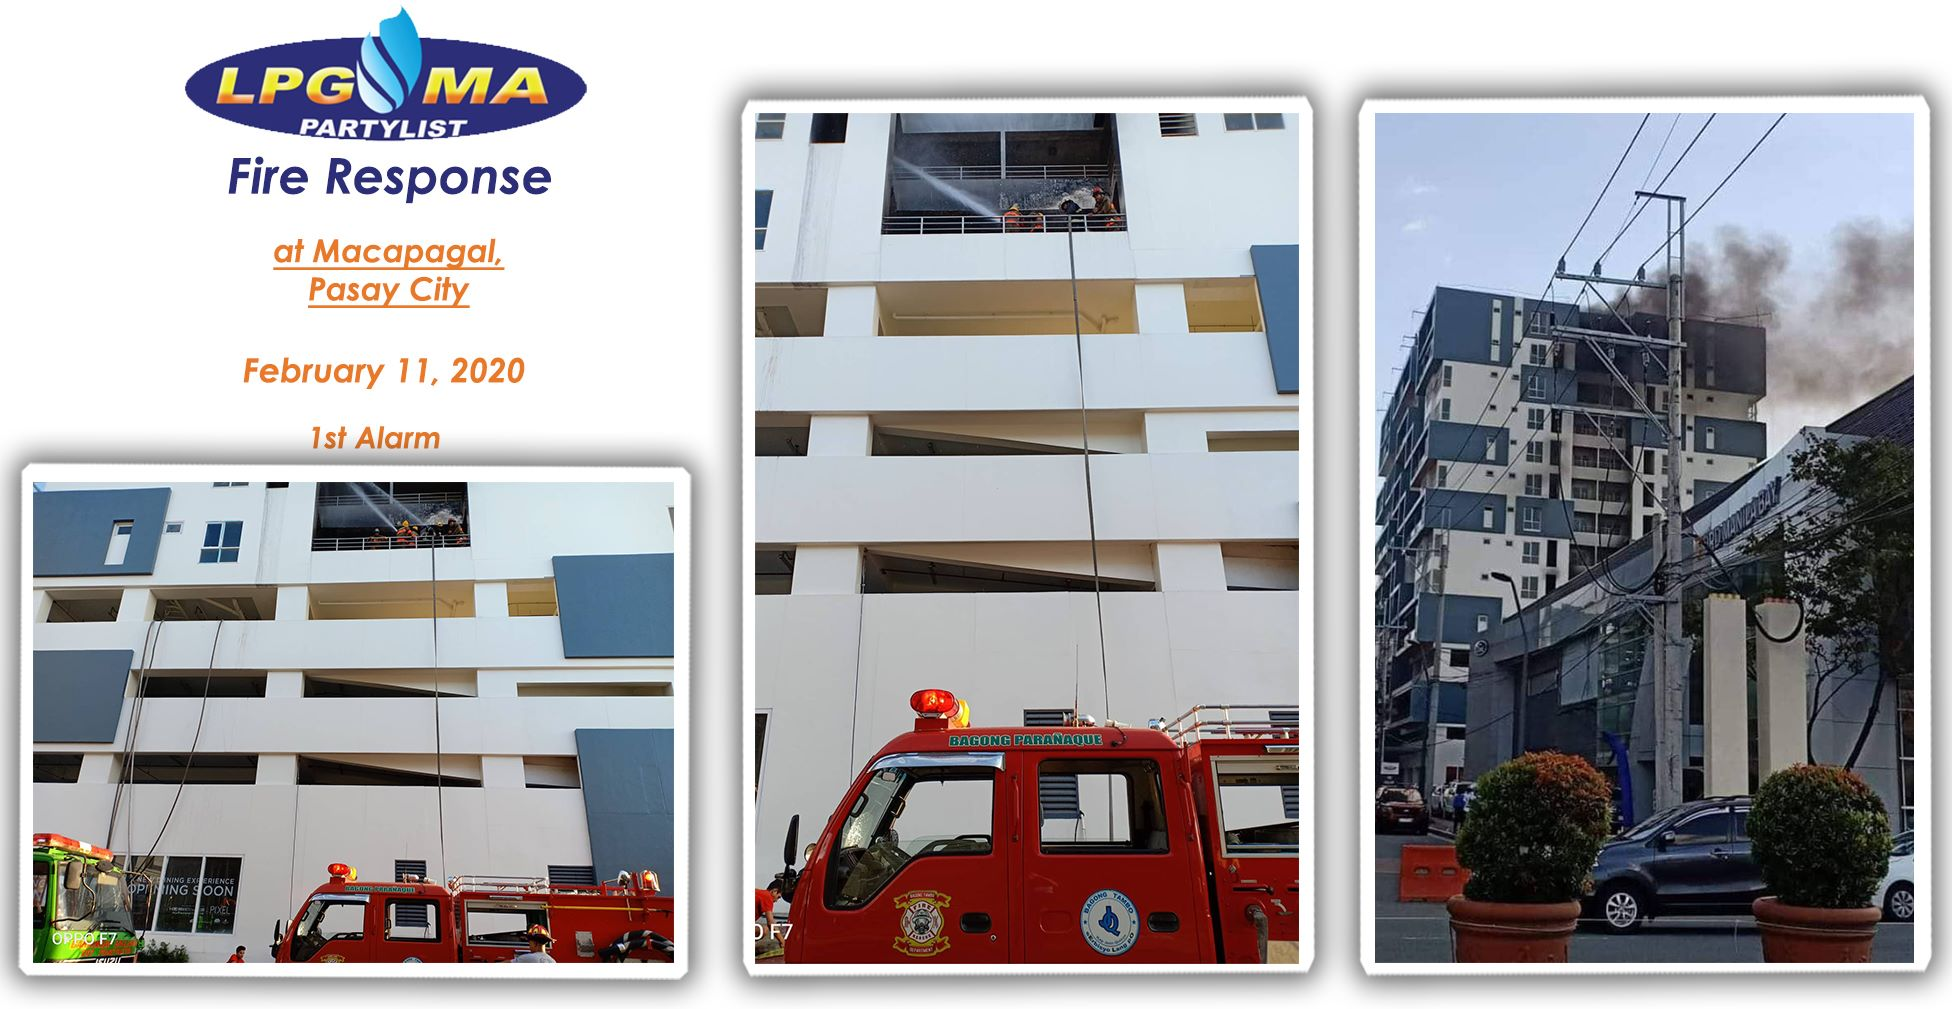 LPGMA Fire Response in Pasay